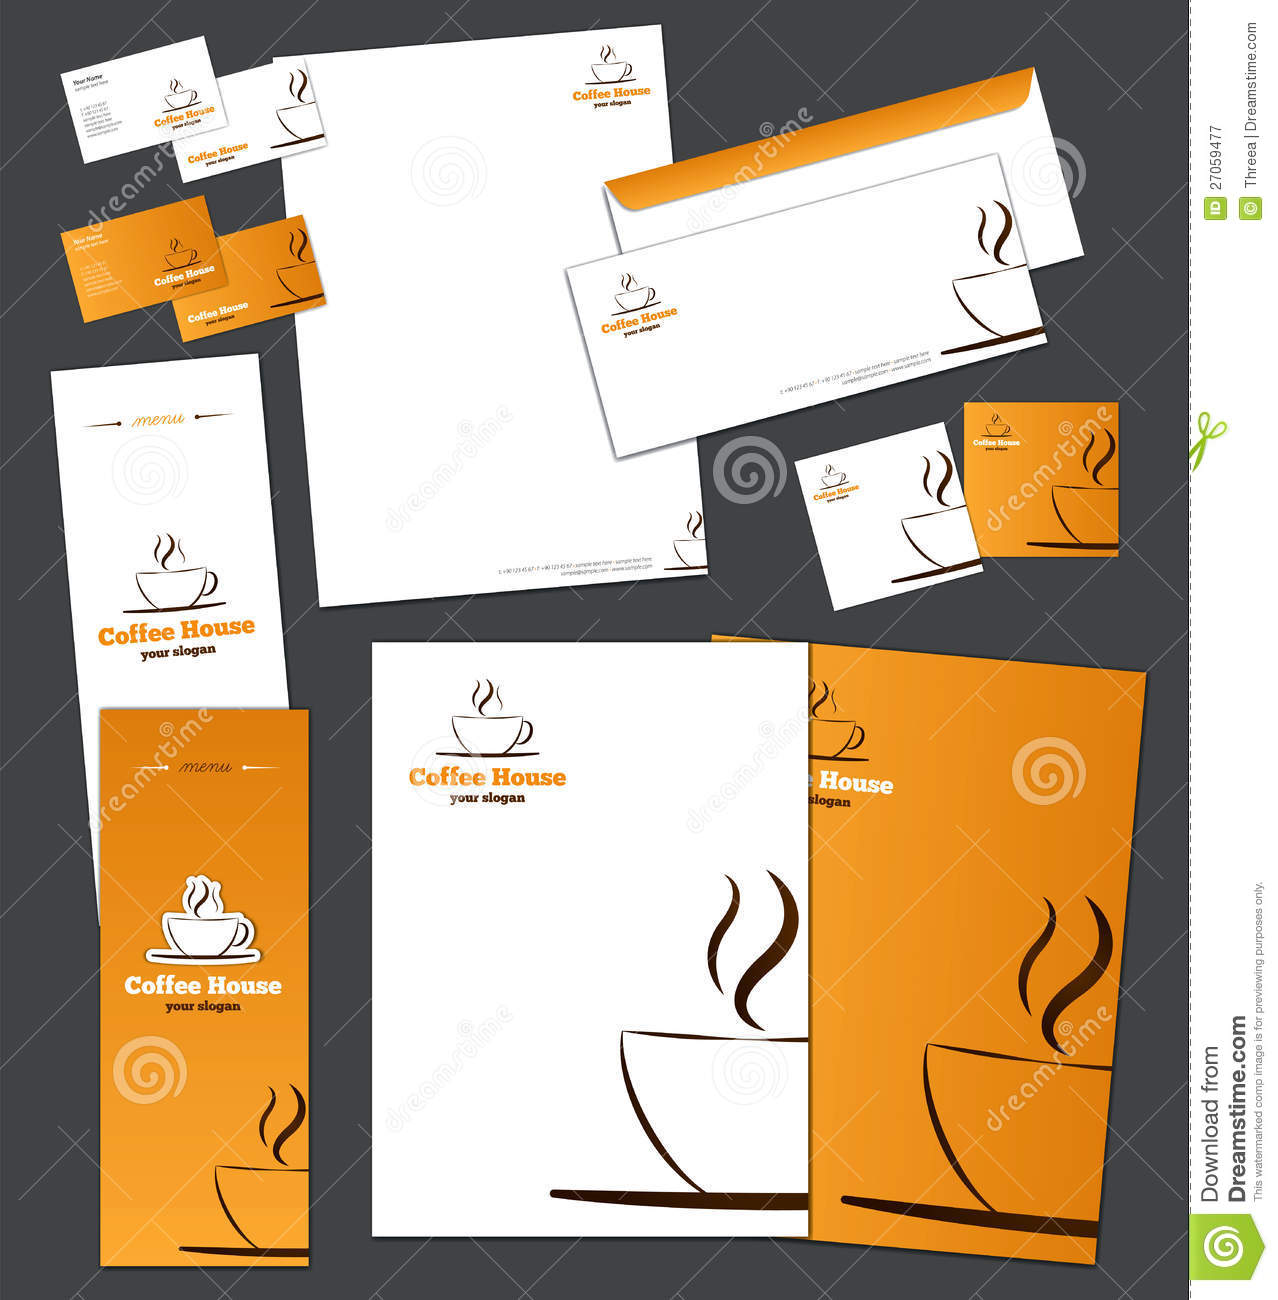 Corporate Identity Template Stock Vector - Illustration of ...